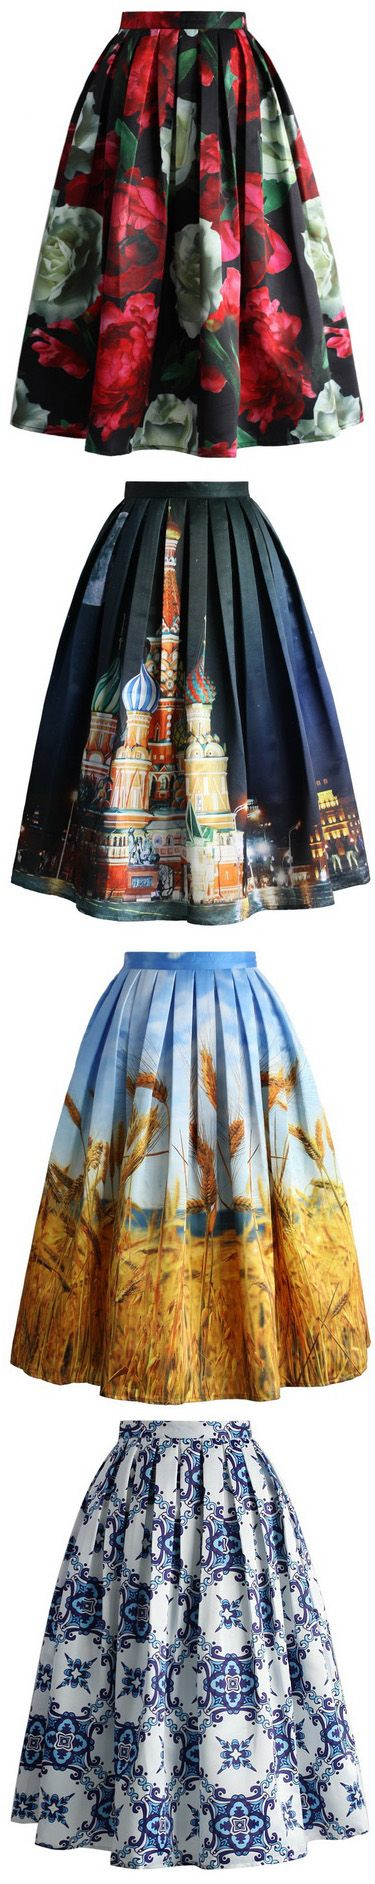 women print midi skirts for fall and winter with floral print, scenic print